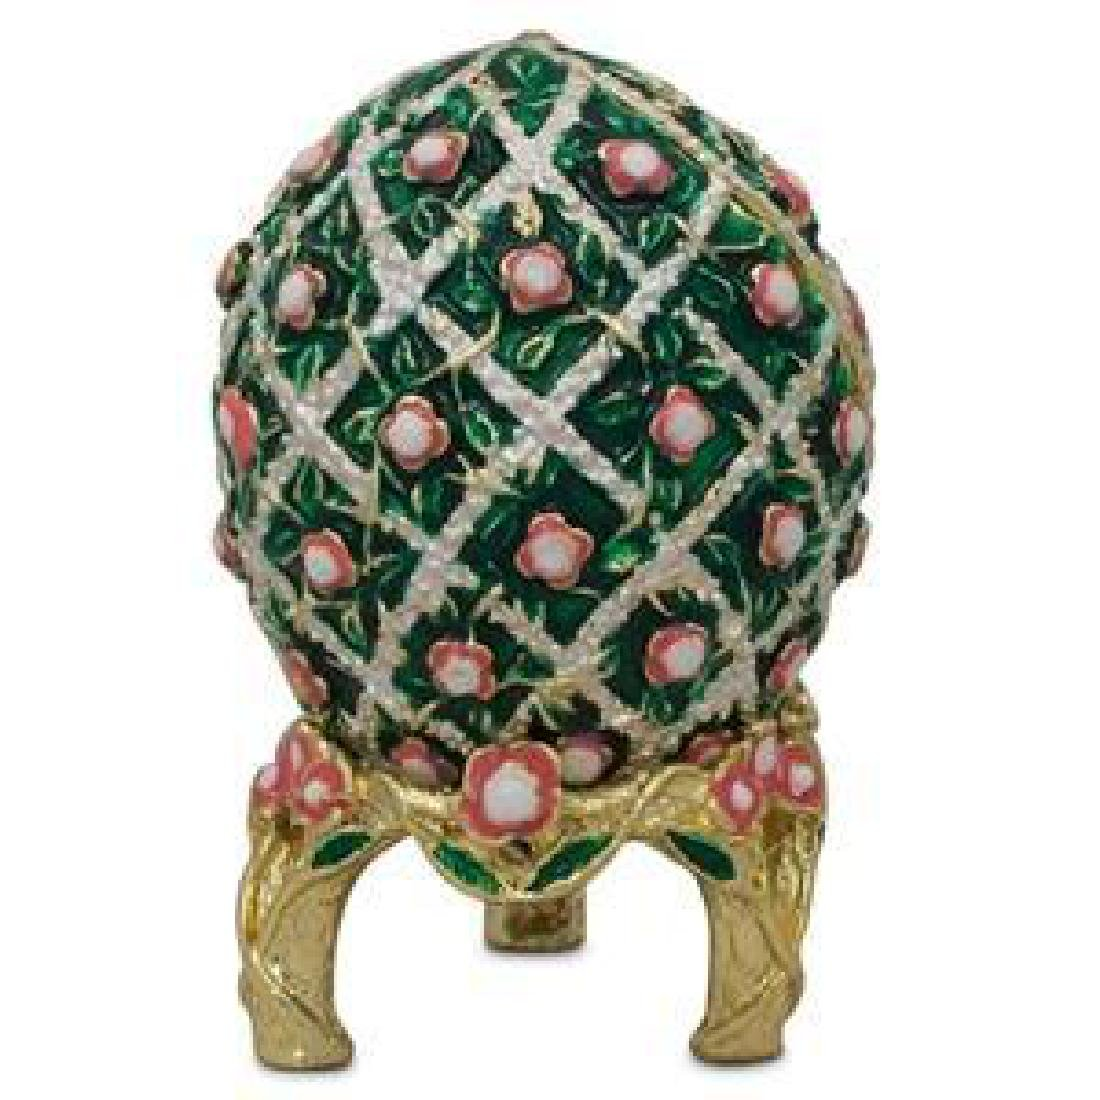 1907 Rose Trellis Russian Faberge Egg